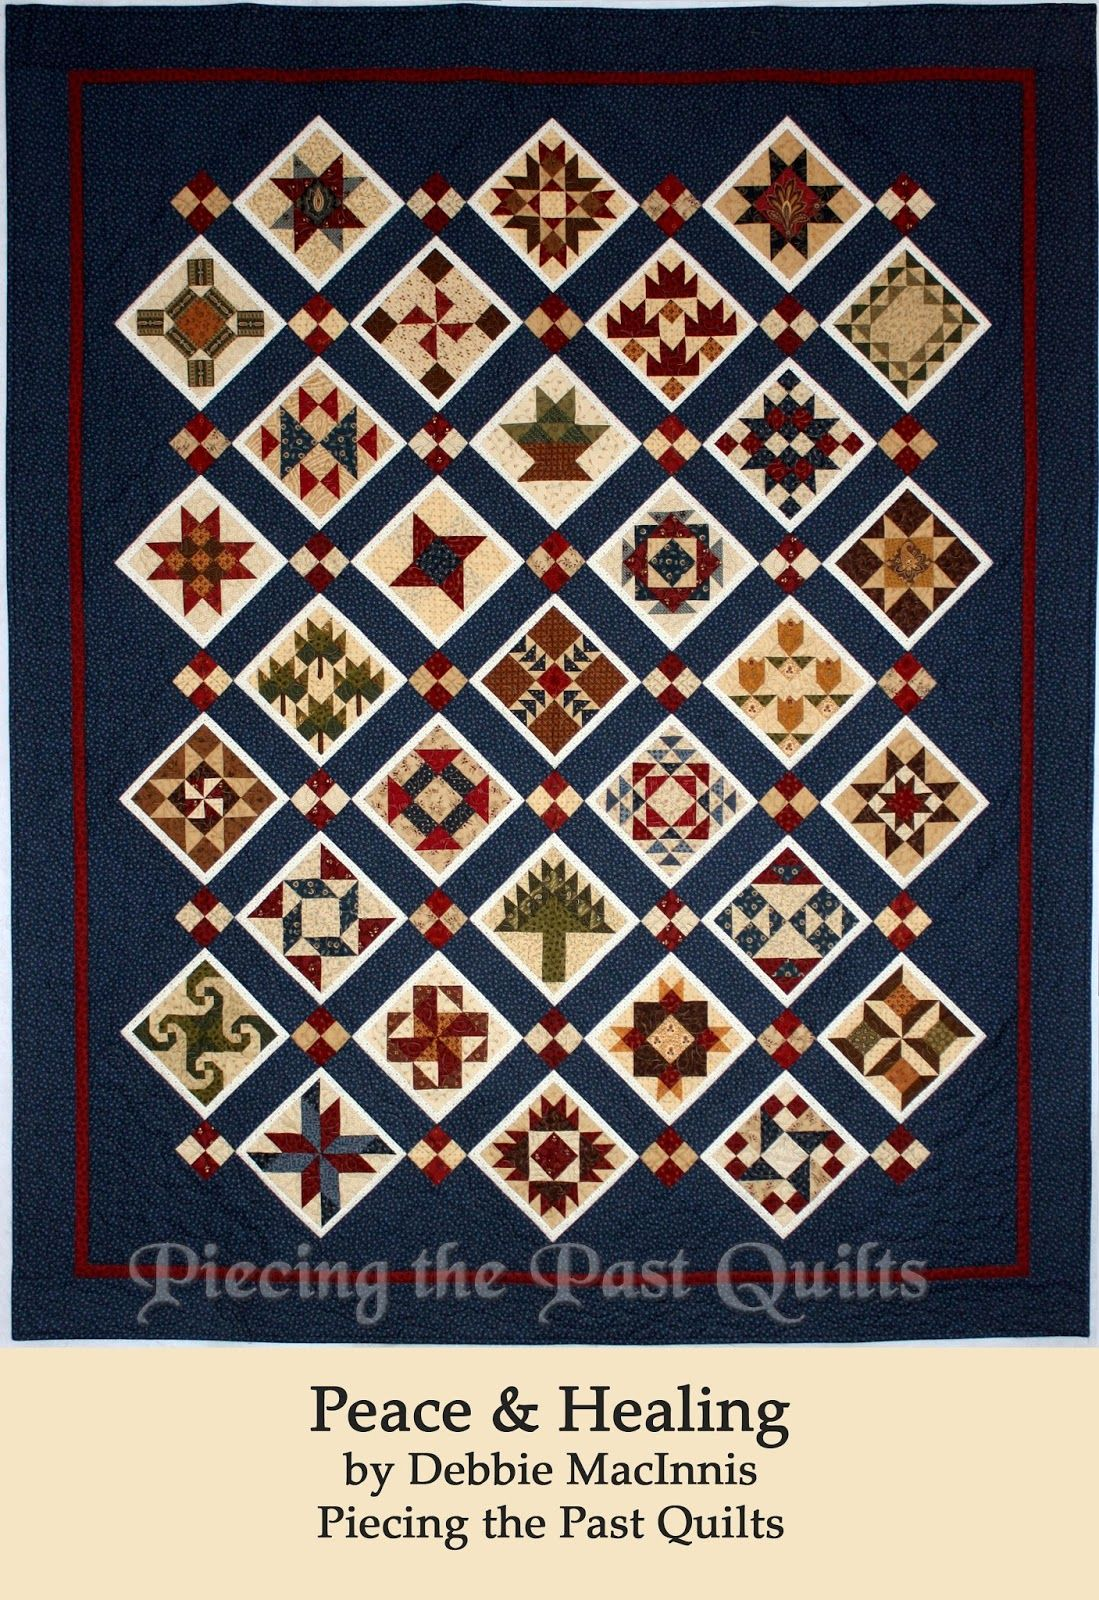 2015 Peace and Healing Civil War S&ler Quilt | Free Quilt BOM ... : civil war quilts for sale - Adamdwight.com